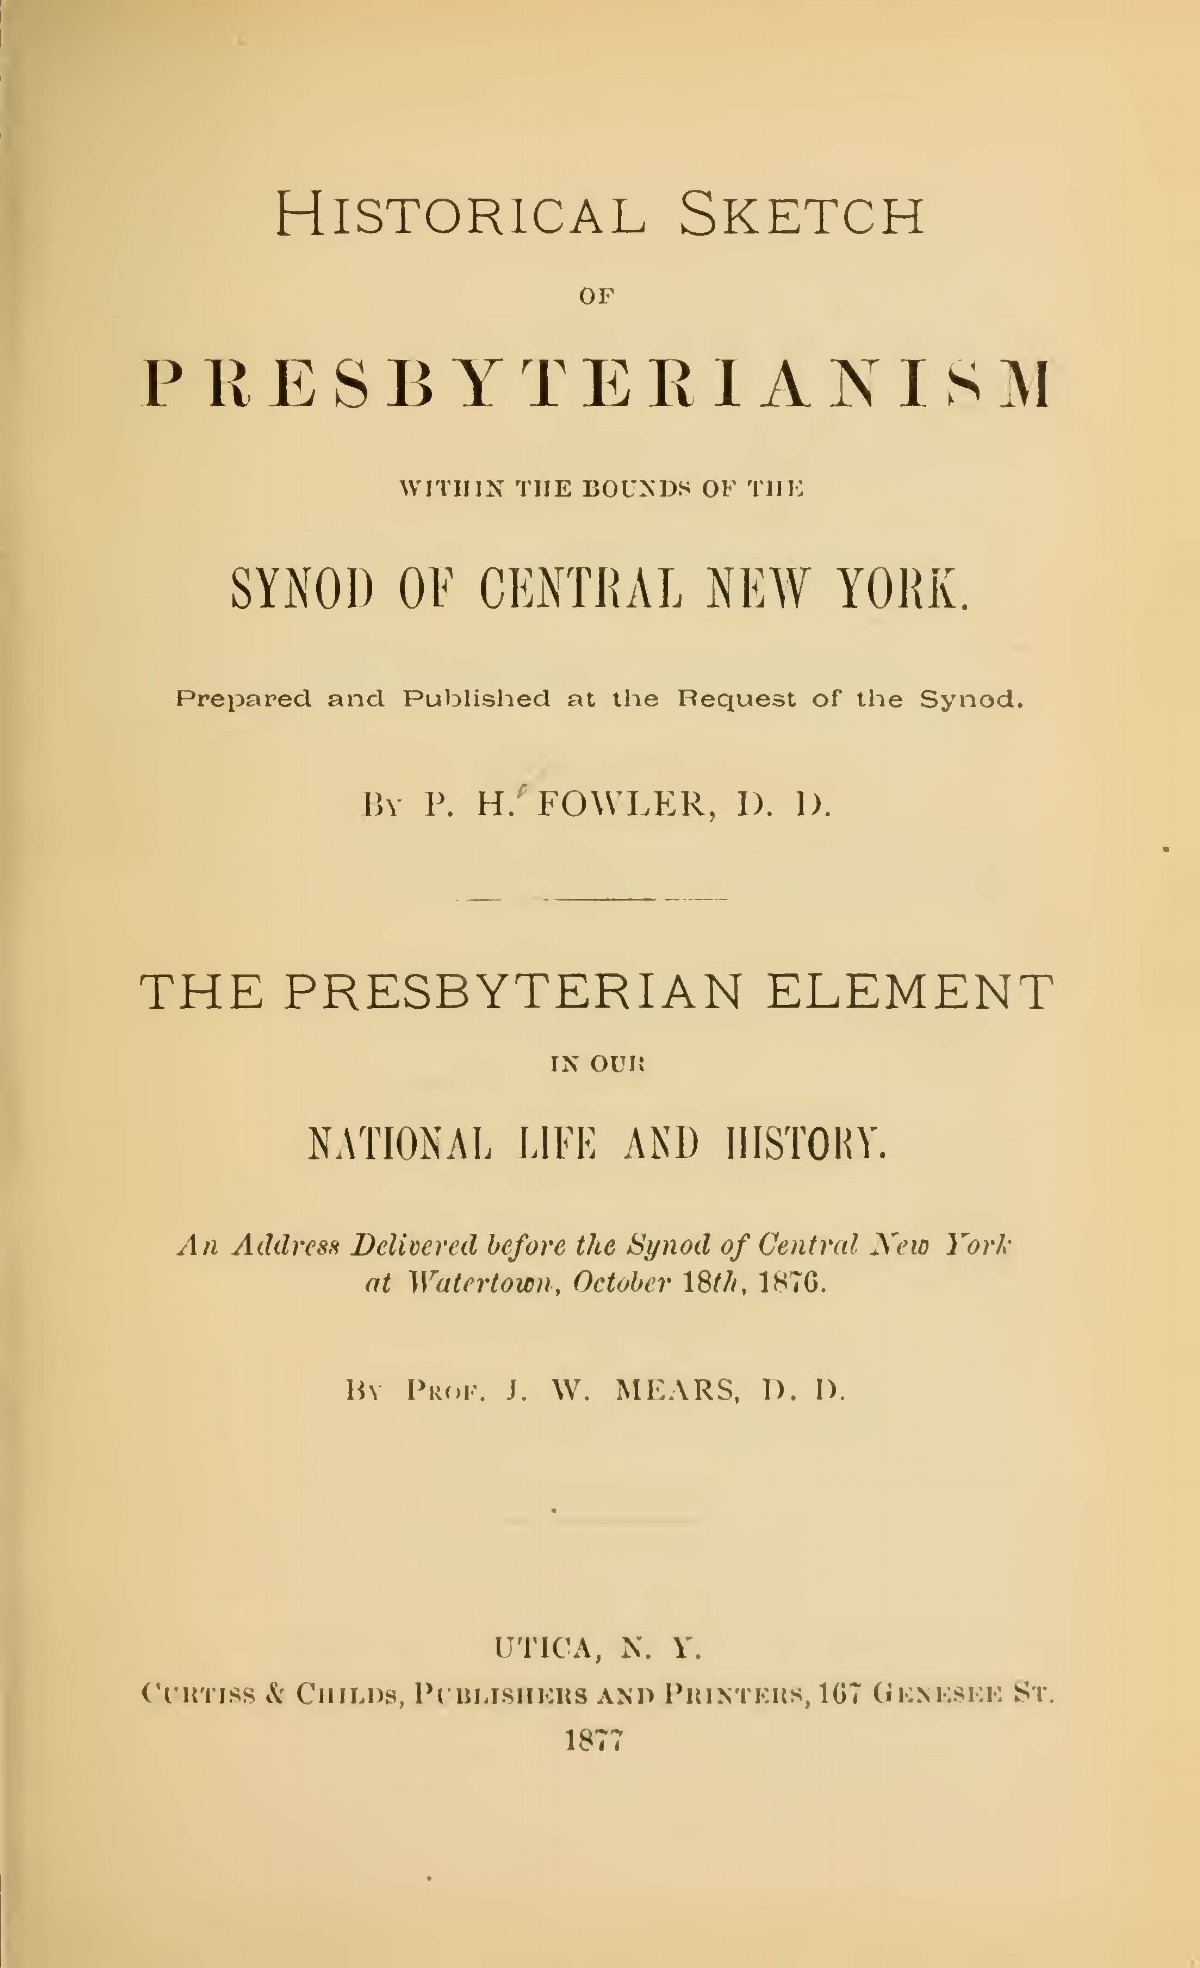 Fowler, Philemon Halsted, Historical Sketch of Presbyterianism Within the Bounds of the Synod of Central New York Title Page.jpg